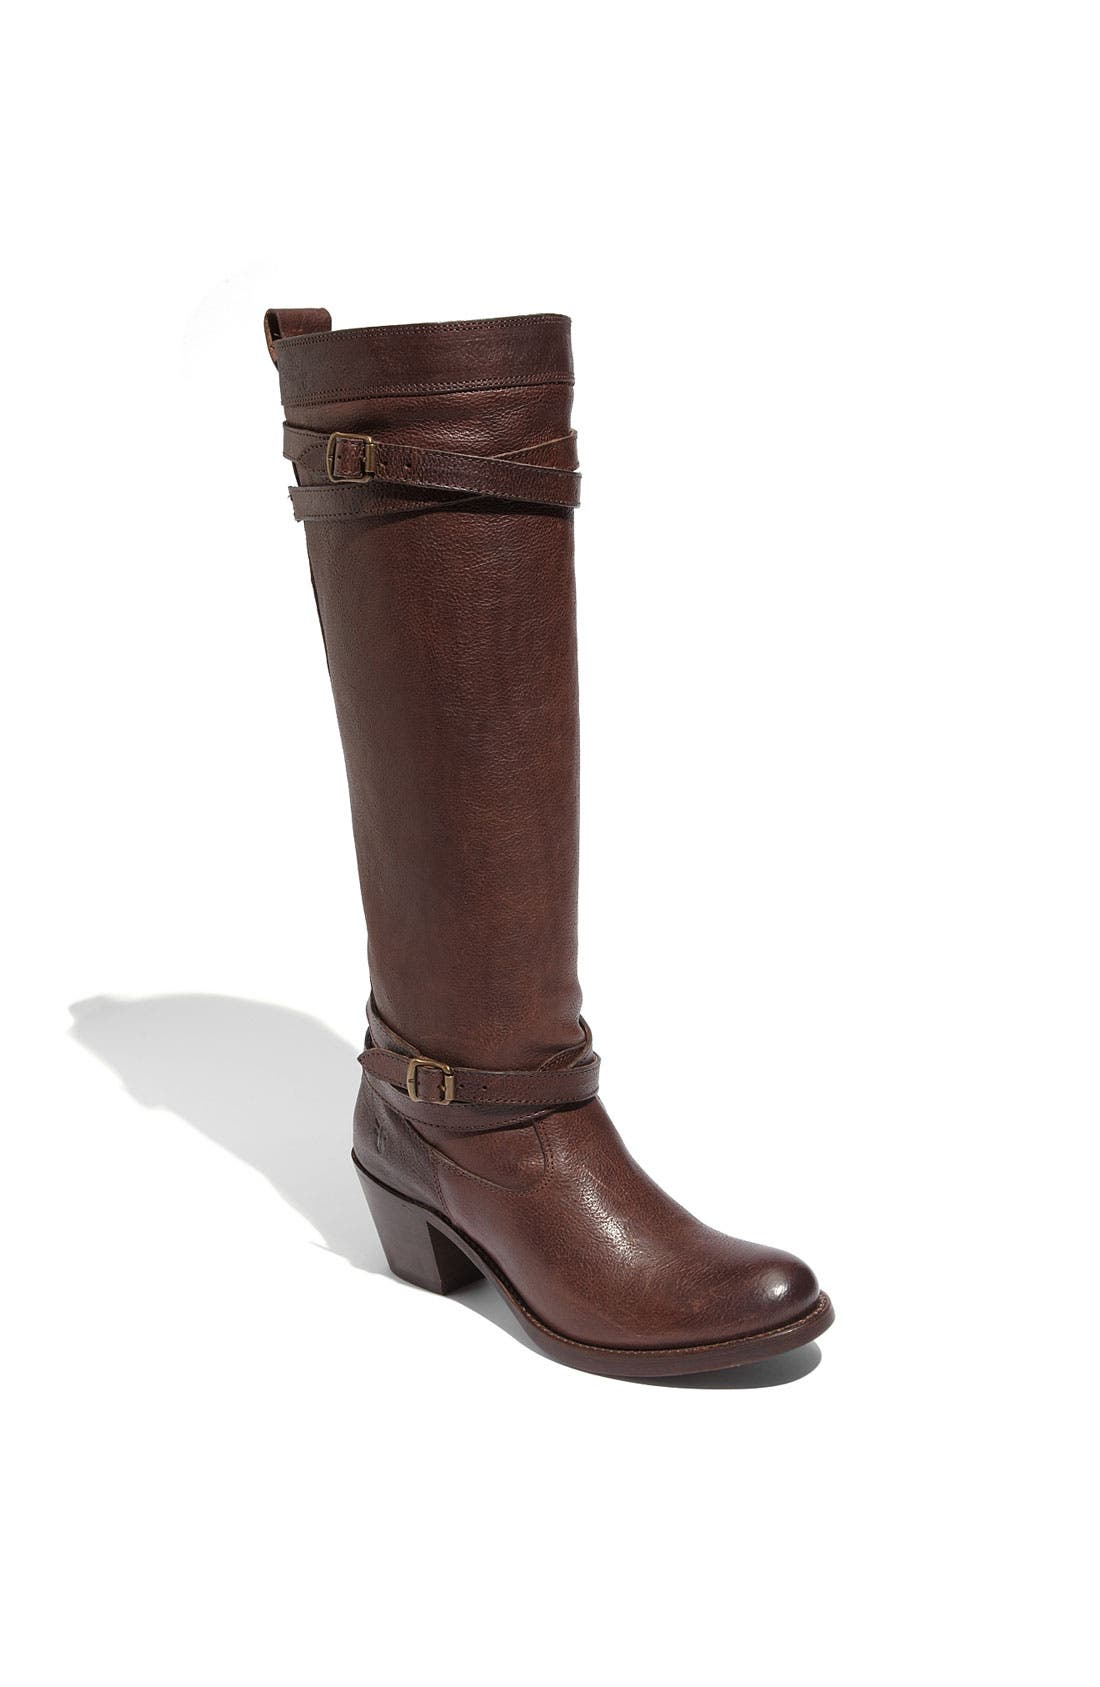 Alternate Image 1 Selected - Frye 'Jane Strappy' Boot